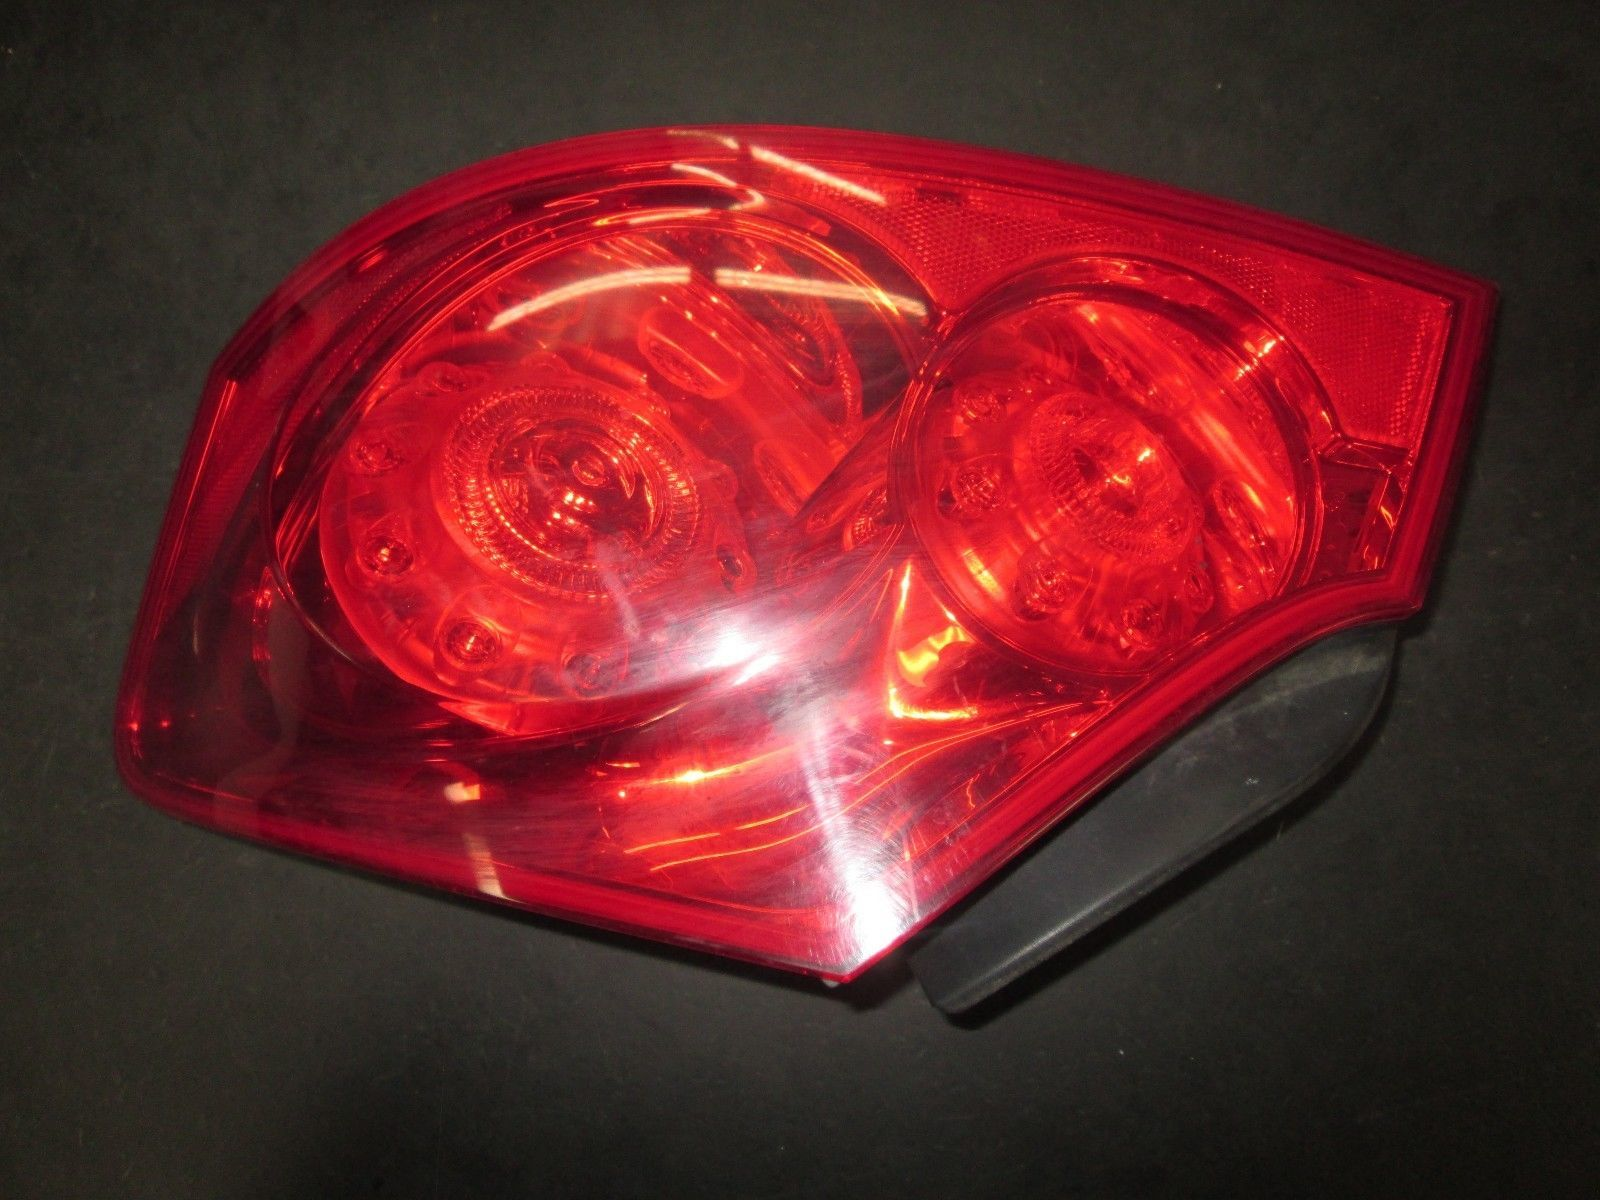 Primary image for 07 08 09 10 11 12 13 INFINITY G25,G35,G37 RIGHT PASSENGER SIDE TAIL LIGHT